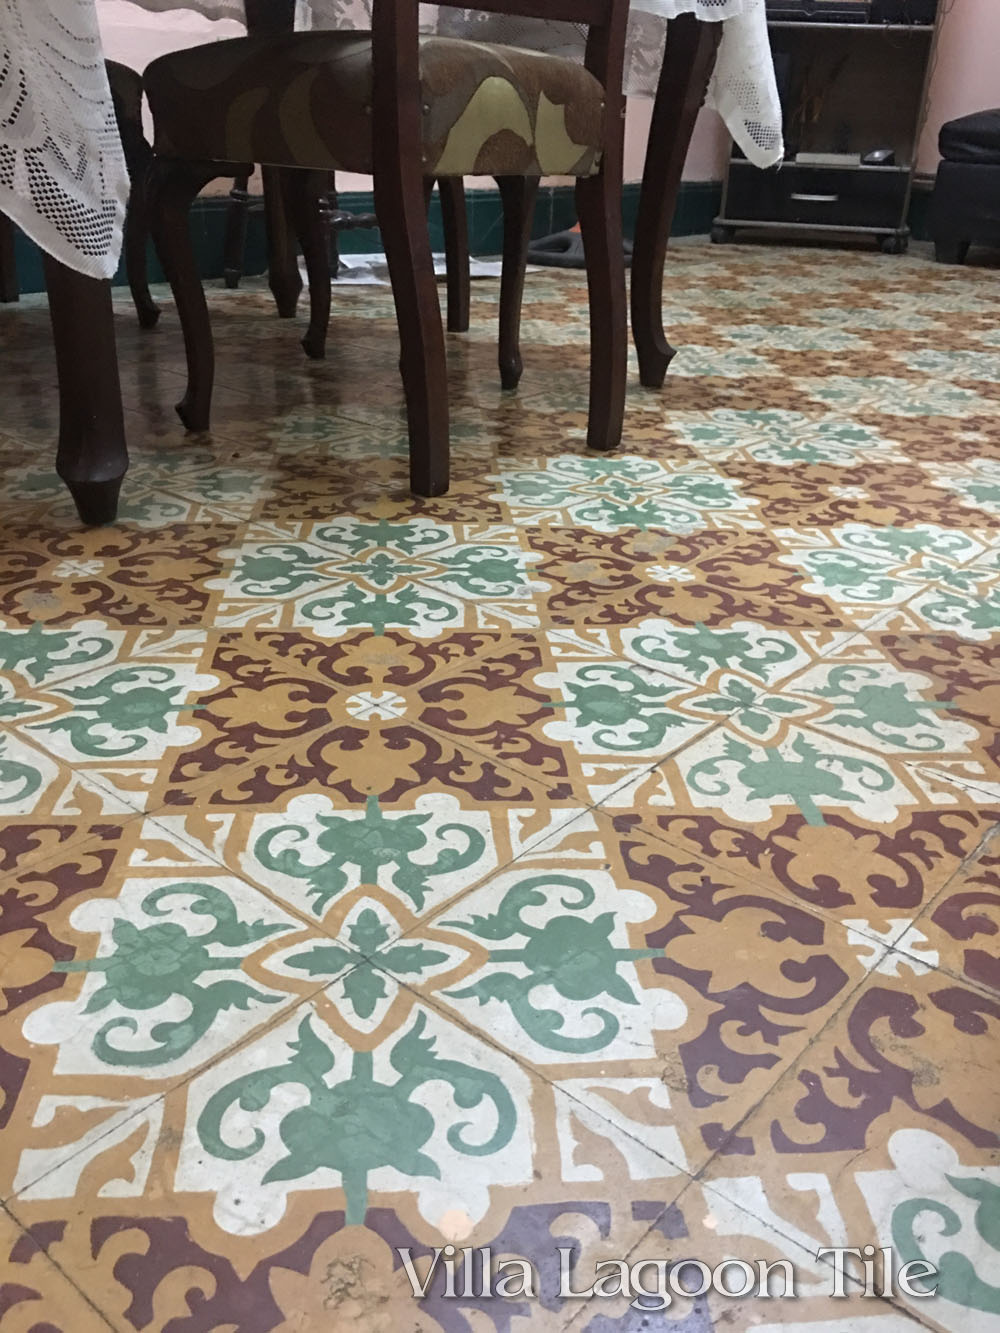 Antique cement tile in Havana in a historic district restaurant.